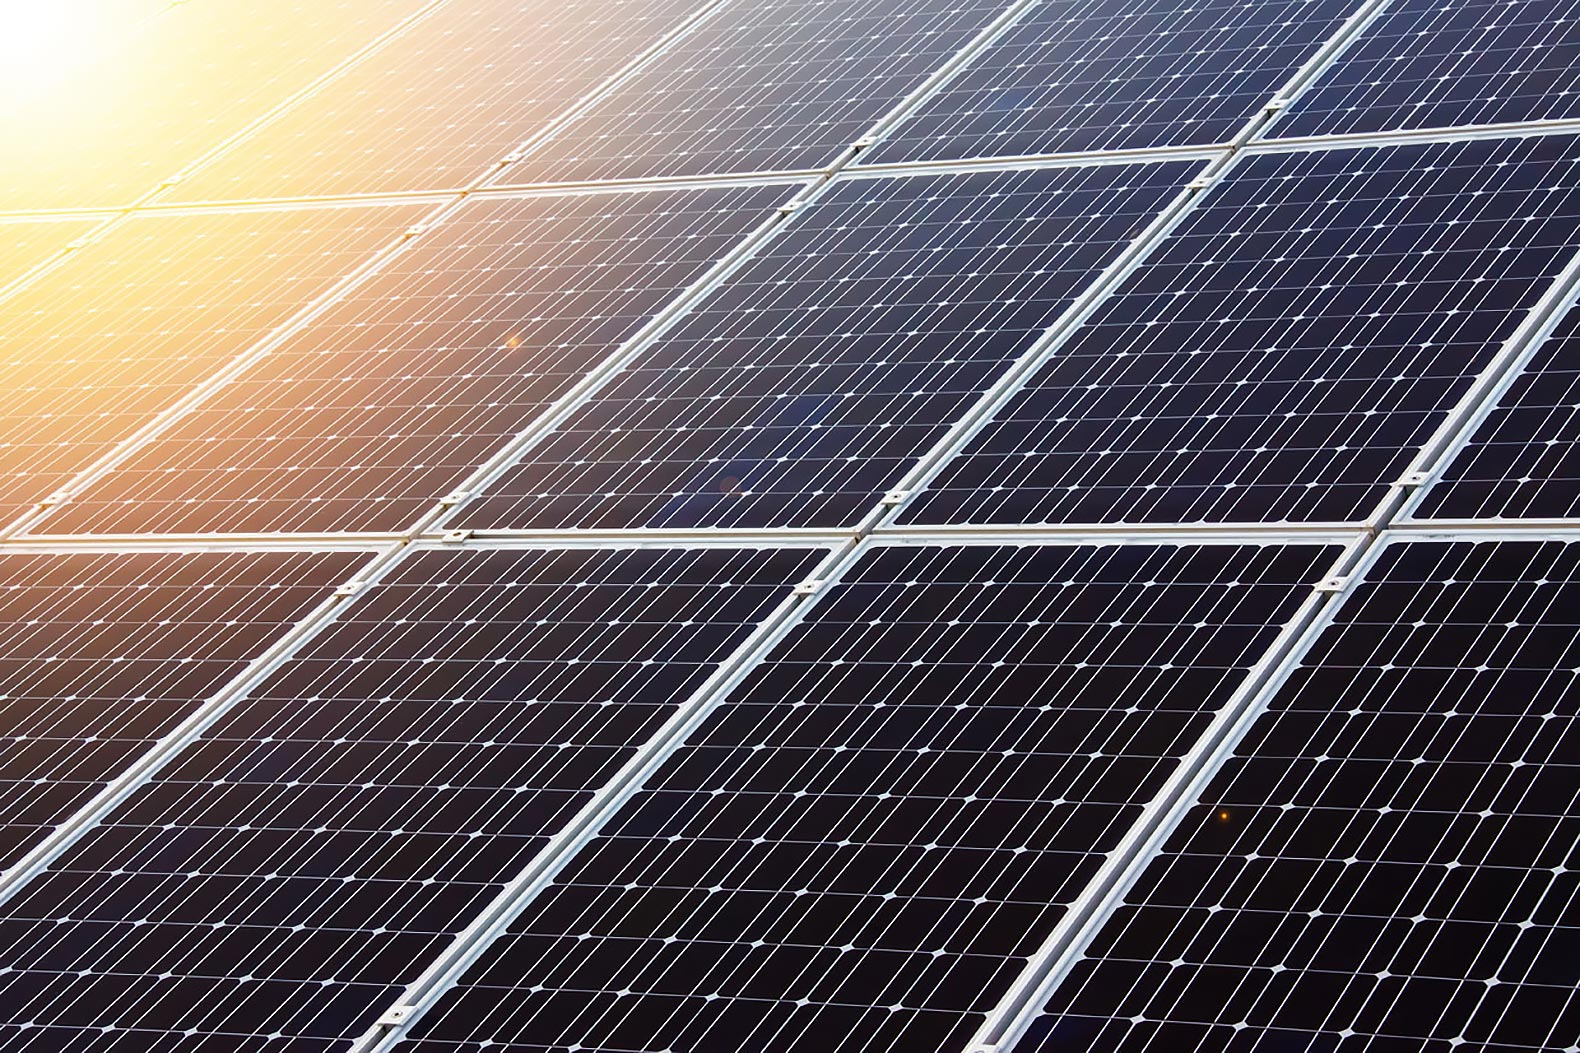 Scientists unveil first printable, stable perovskite solar cell good for 10K hours